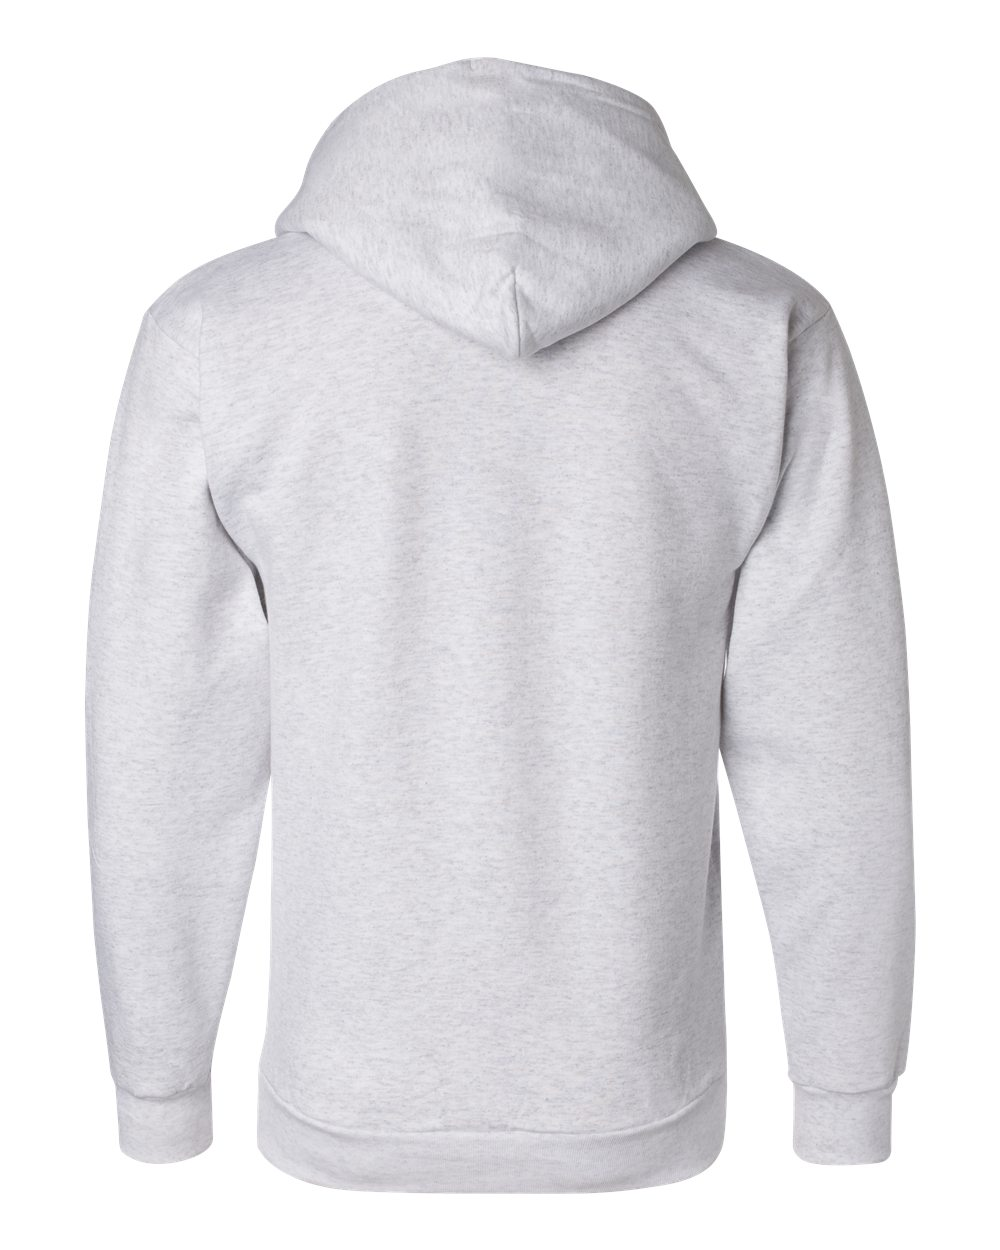 Champion-Mens-Double-Dry-Eco-Hooded-Sweatshirt-Hoodie-Pullover-S700-up-to-3XL miniature 43